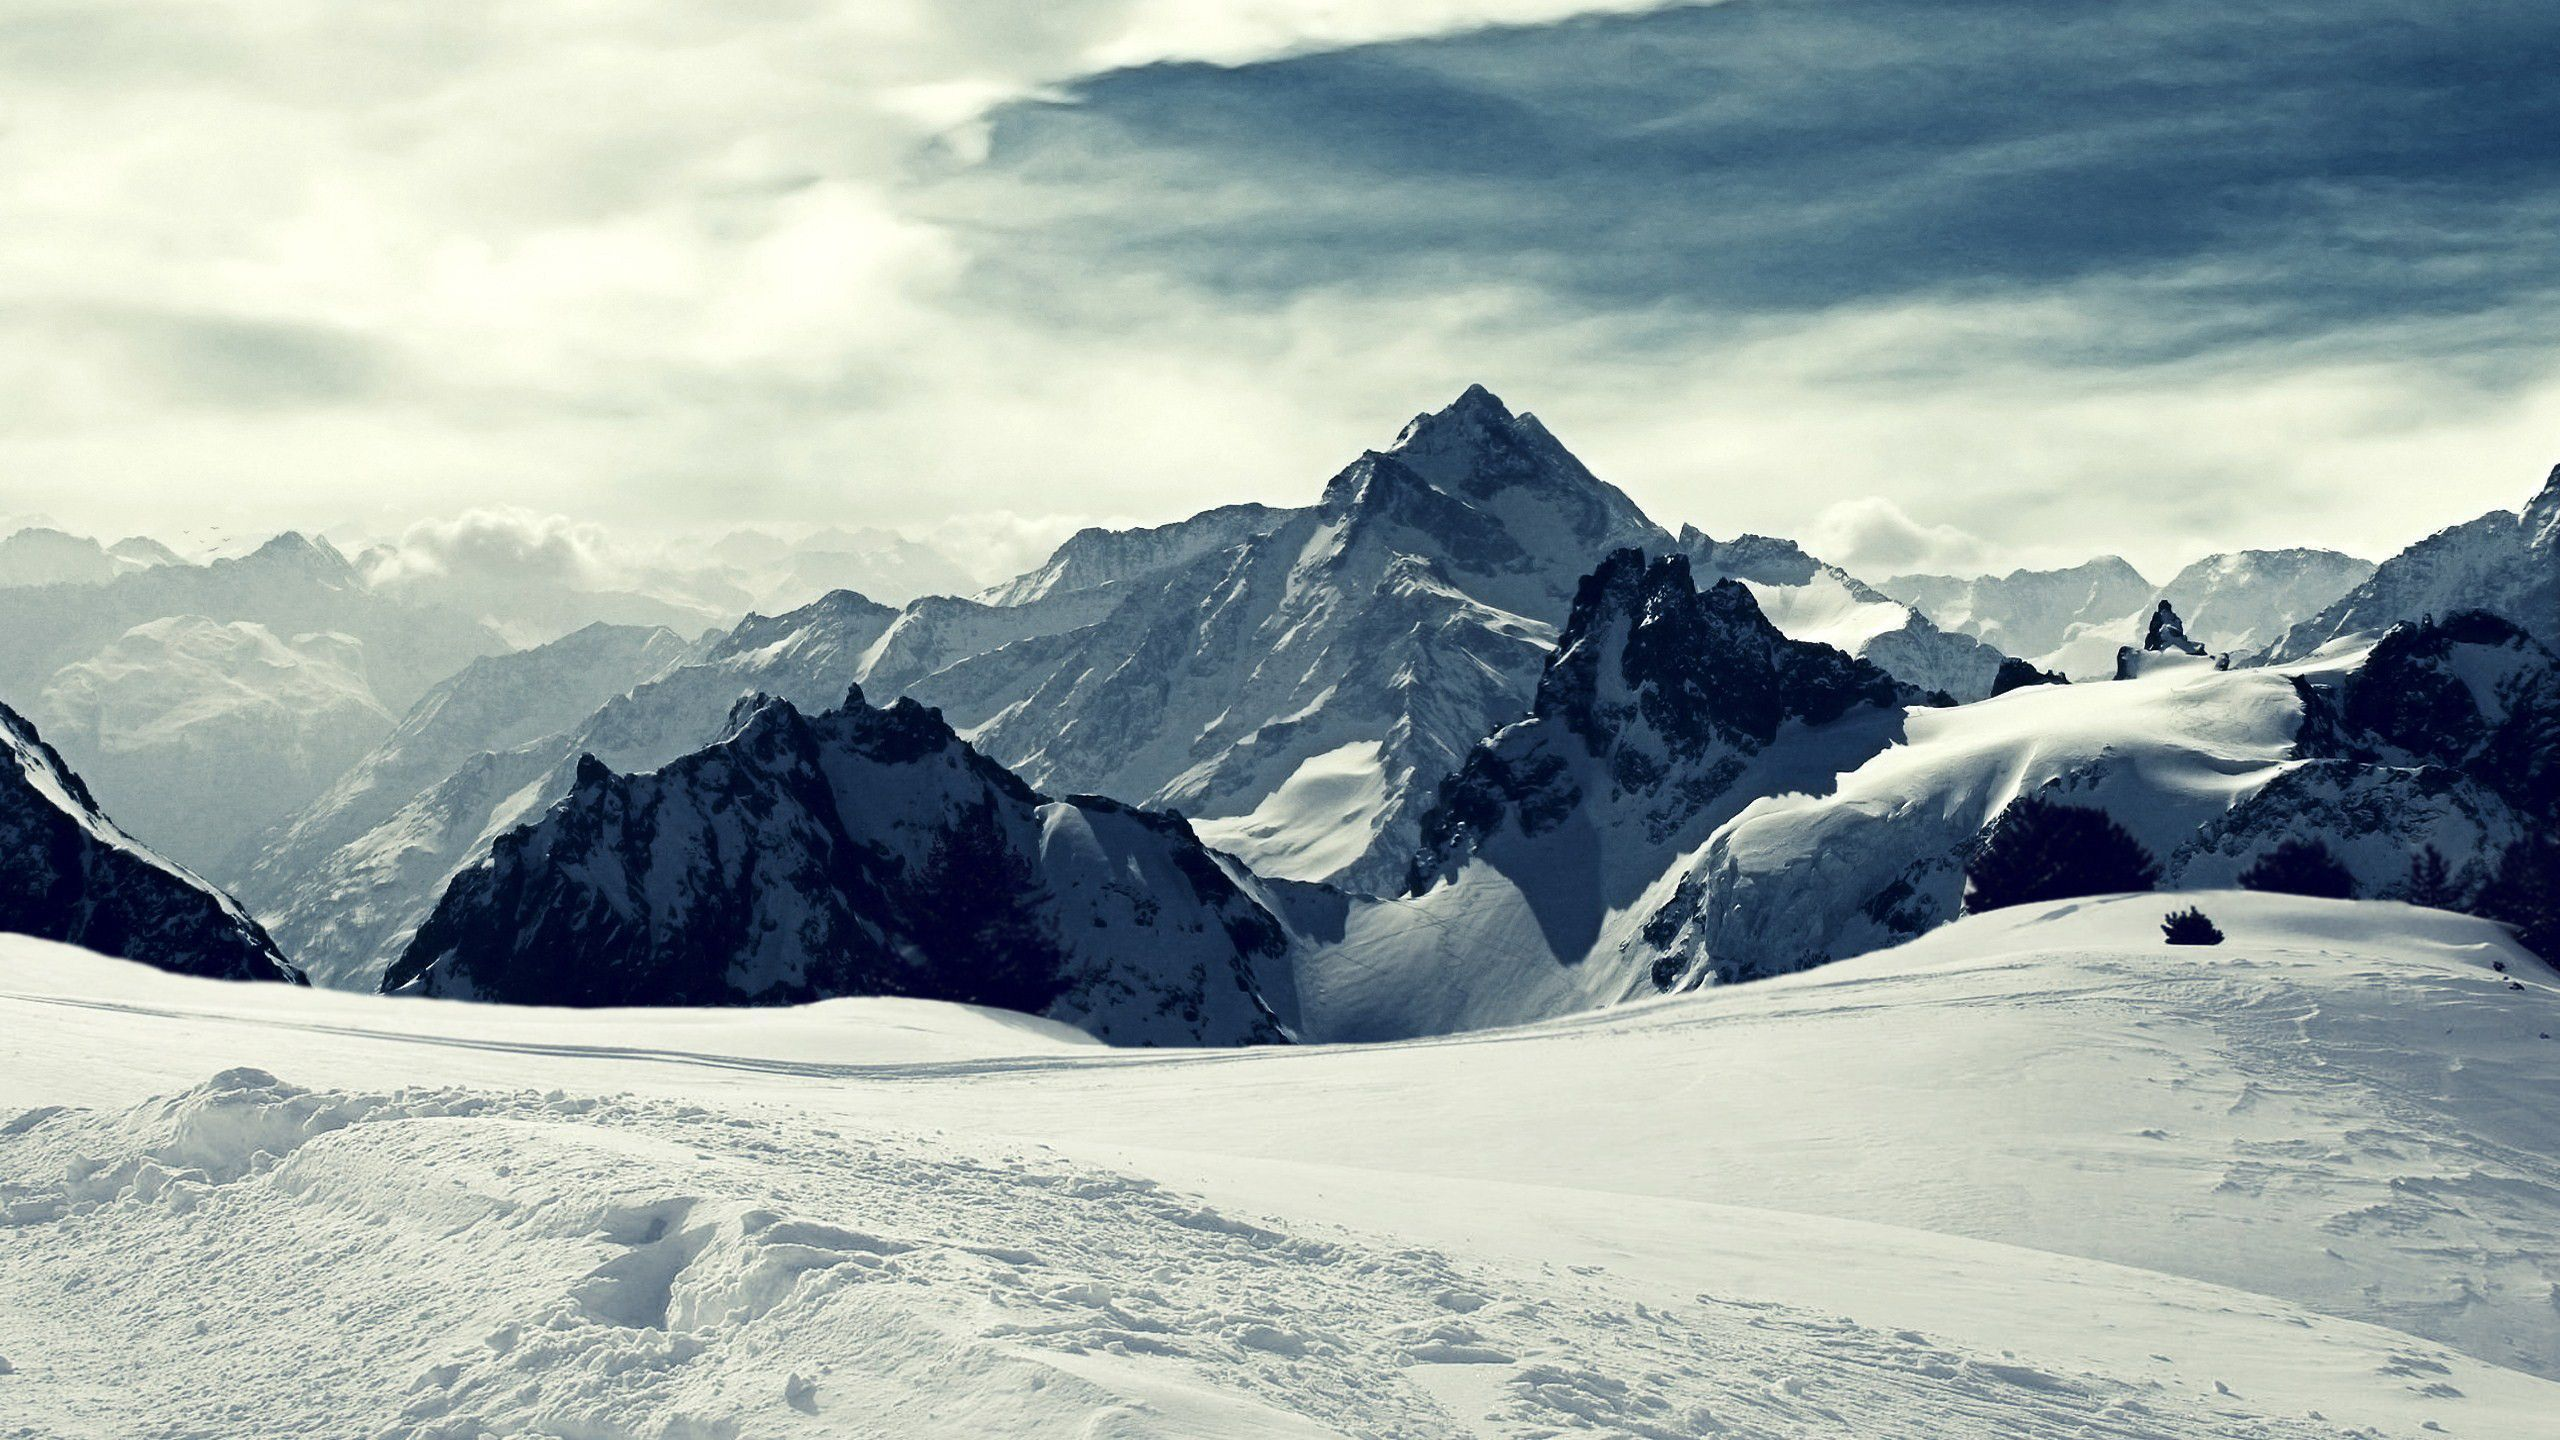 Snowy Mountain Wallpapers Top Free Snowy Mountain Backgrounds